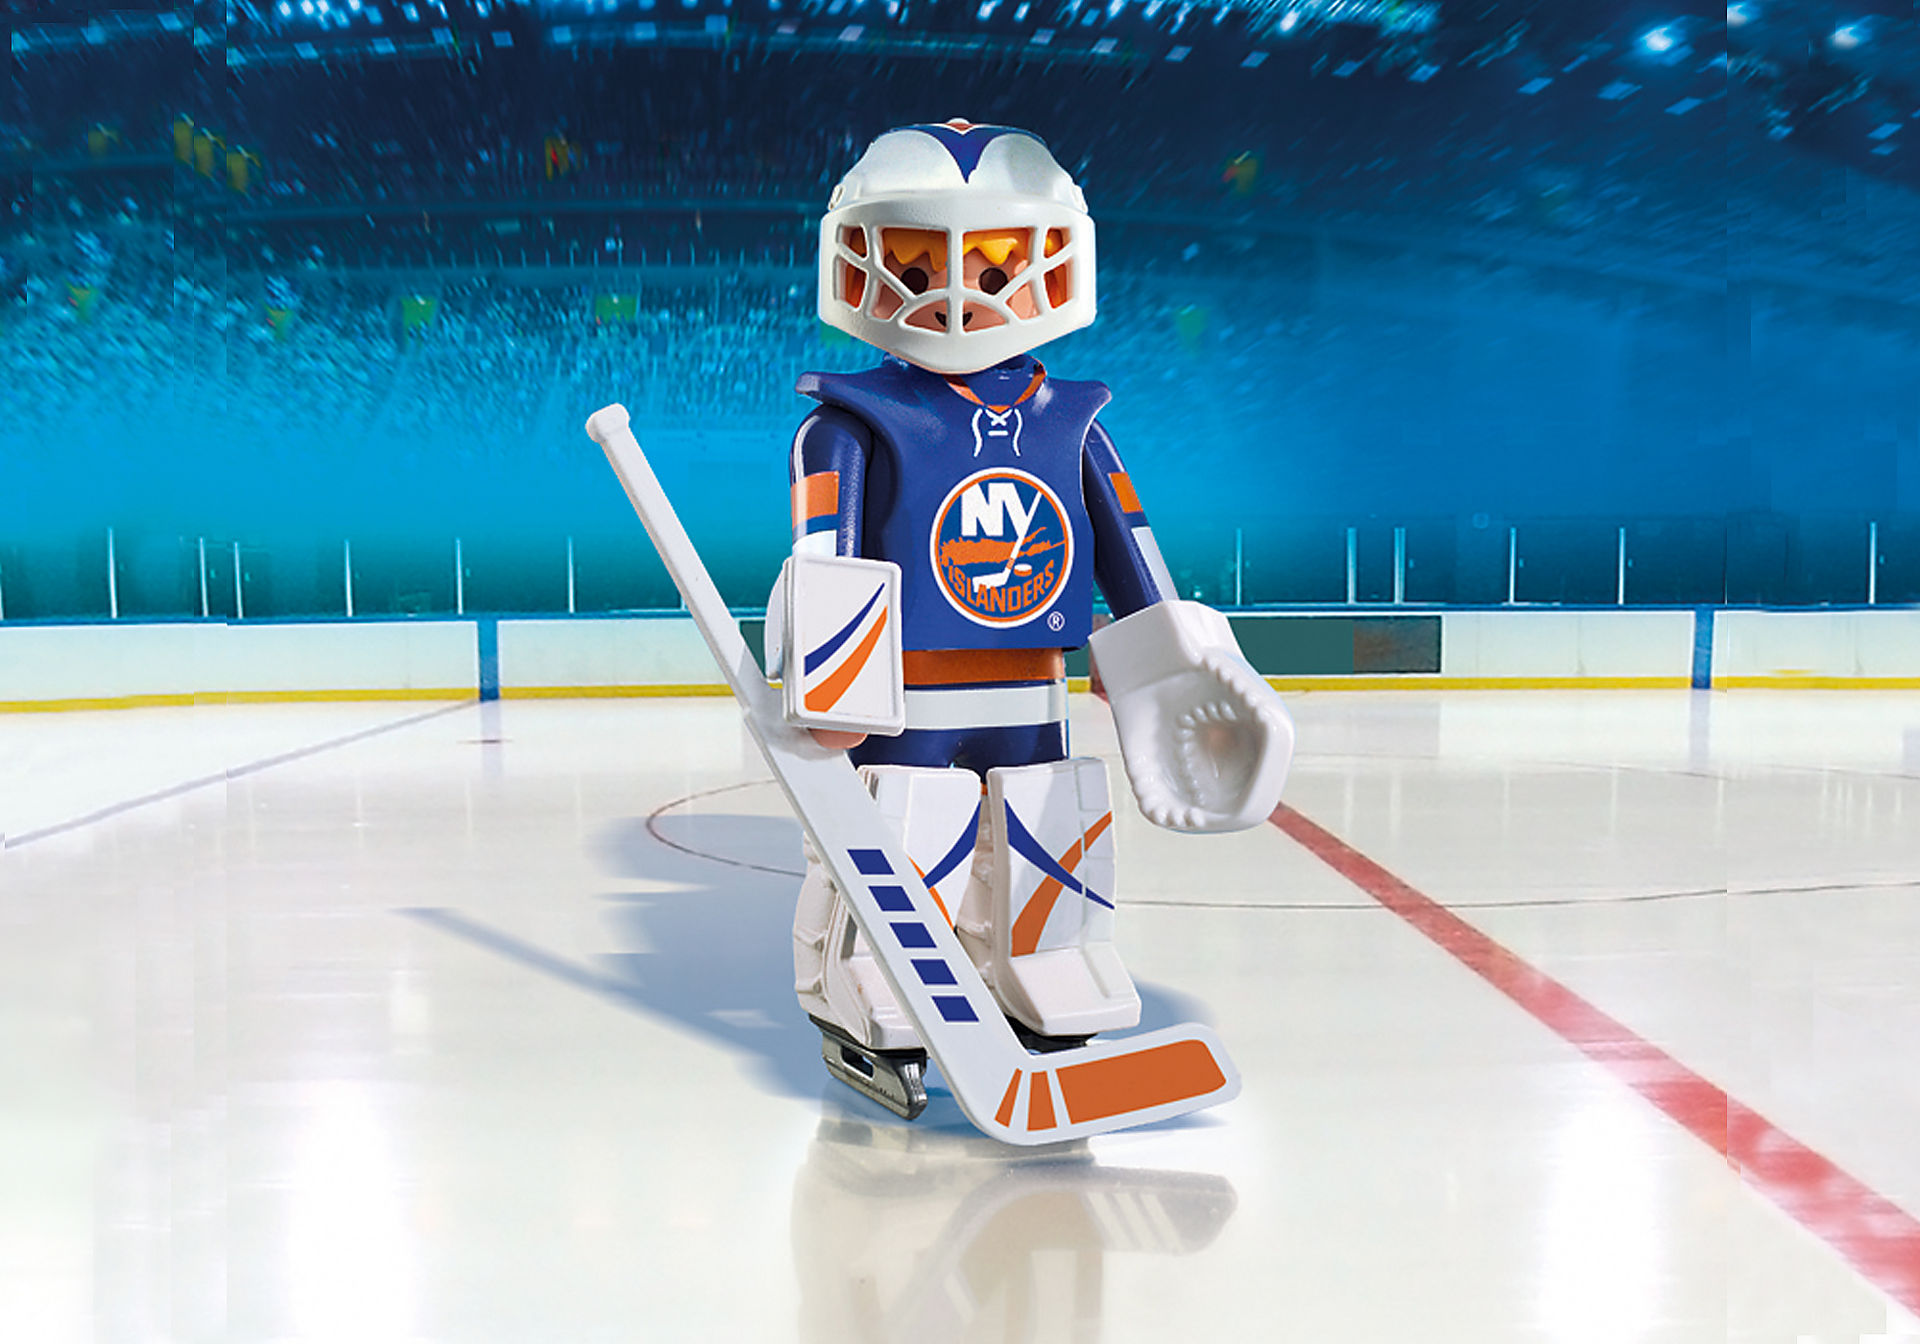 9098 NHL® New York Islanders® Goalie zoom image1